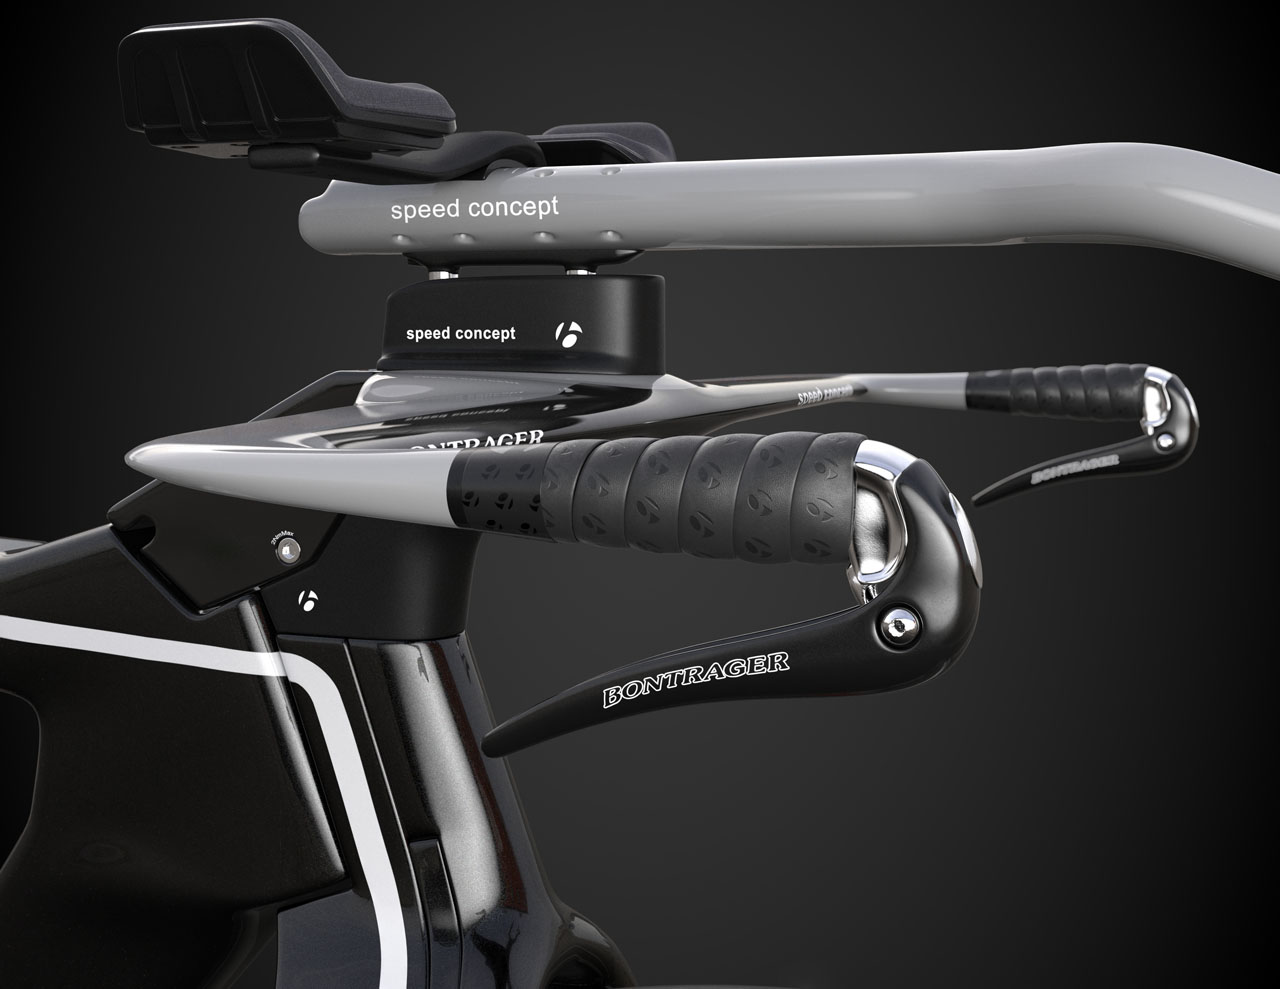 Side view of the handlebars of a fully rendered bicycle.